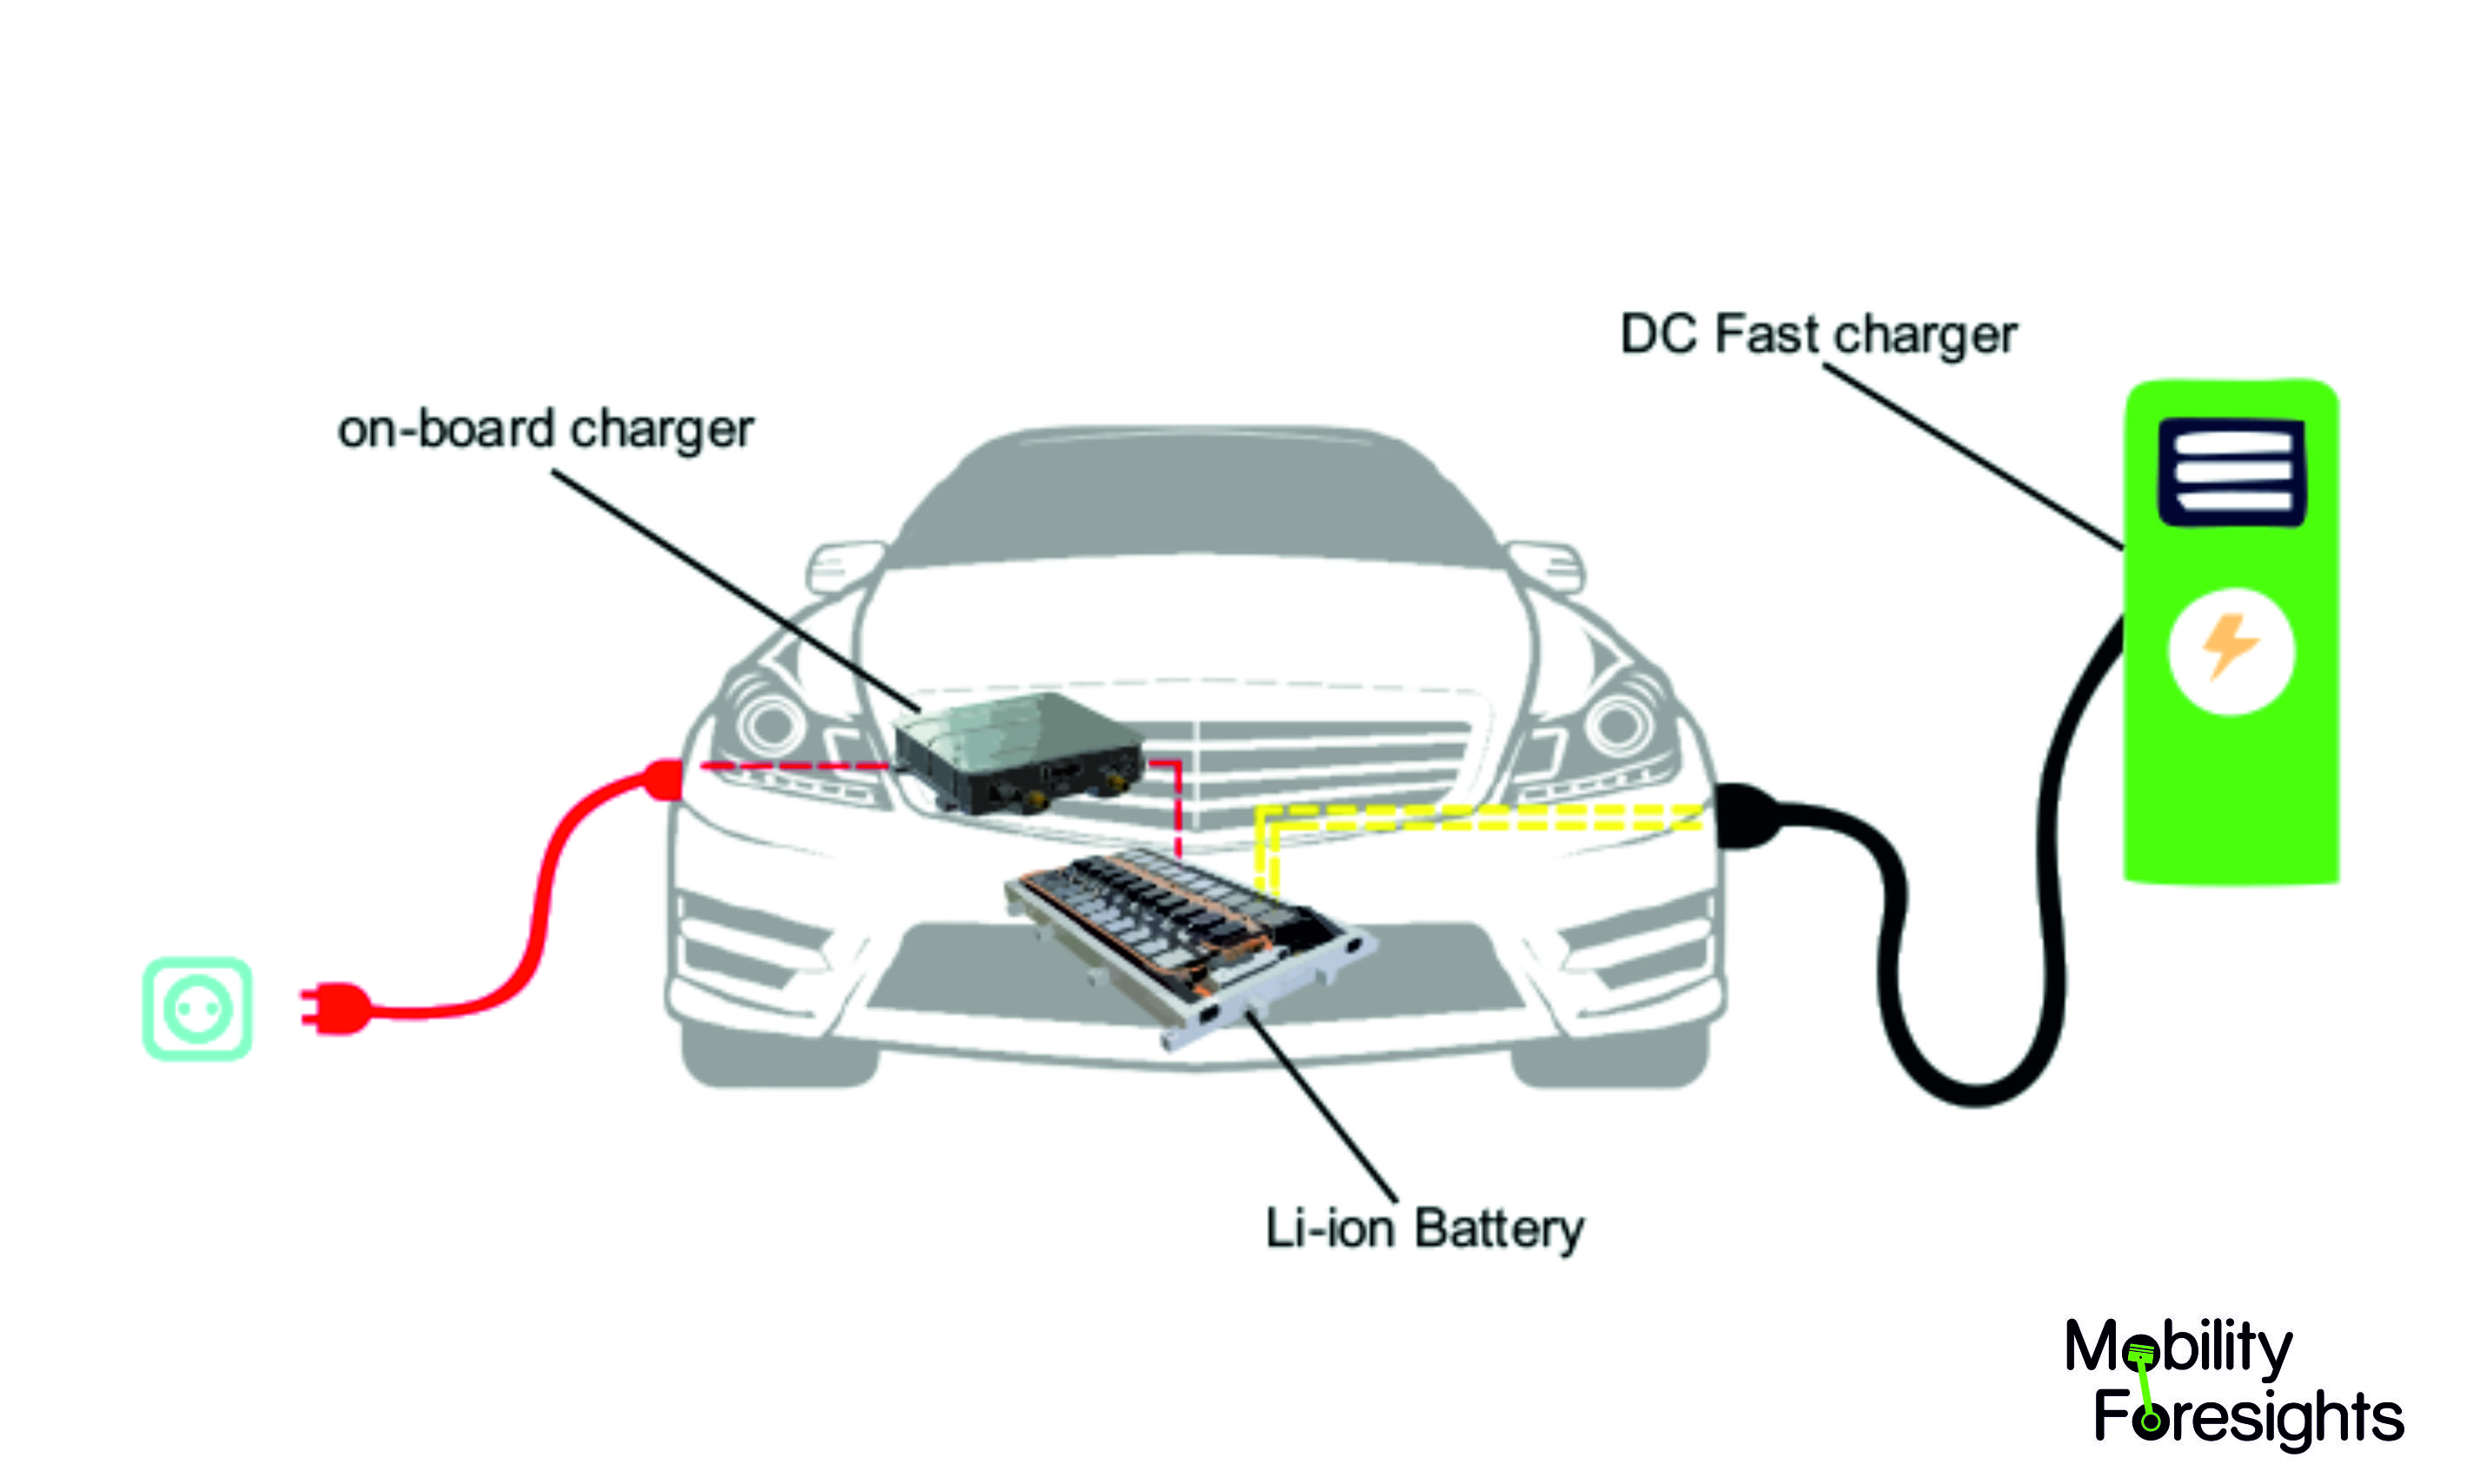 basic details of electric on board charger. it has a battery, power electronics and charger inlet